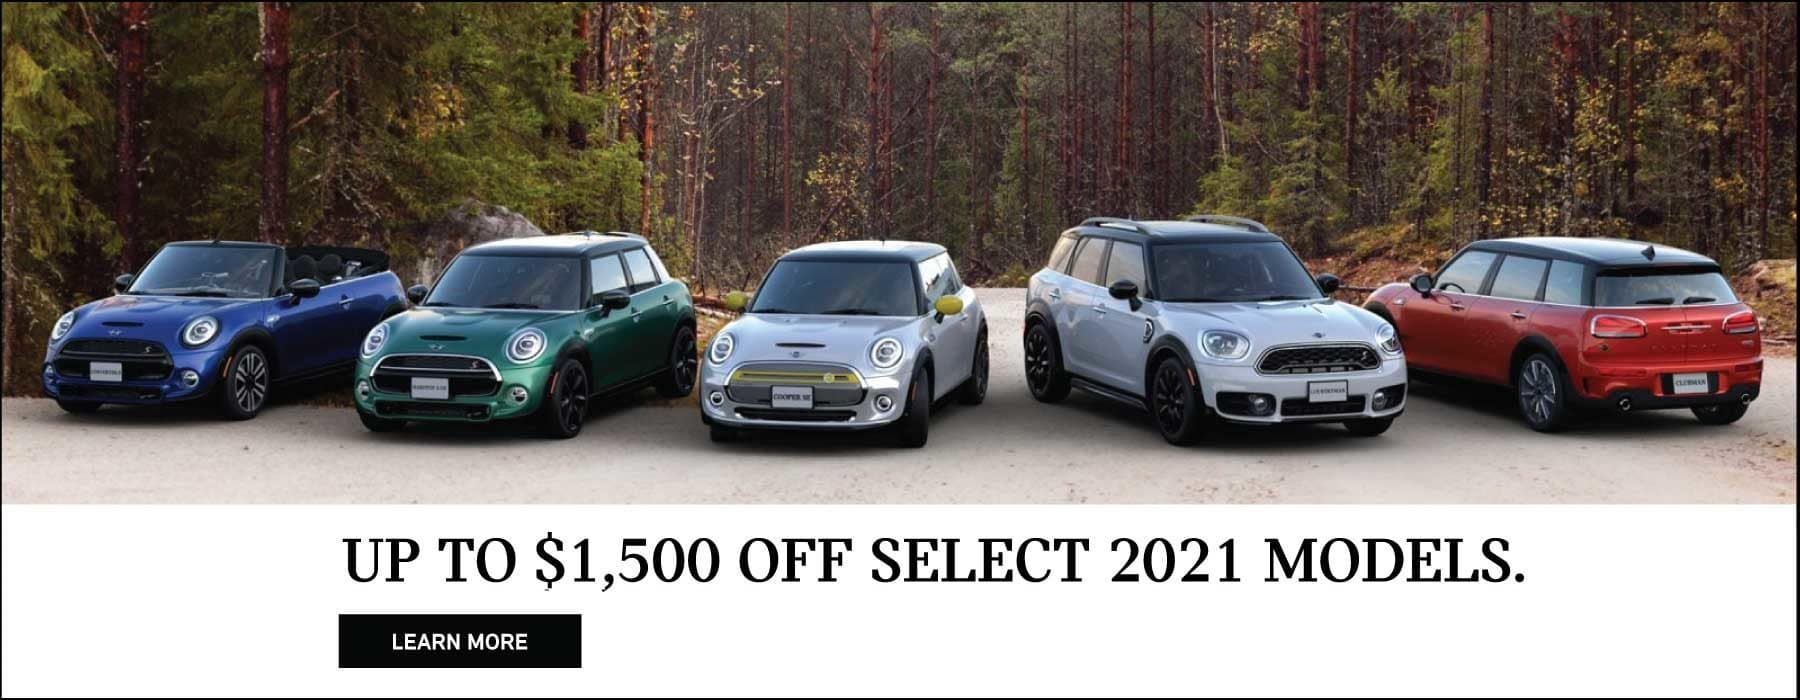 Up to $1,500 off select MINI models